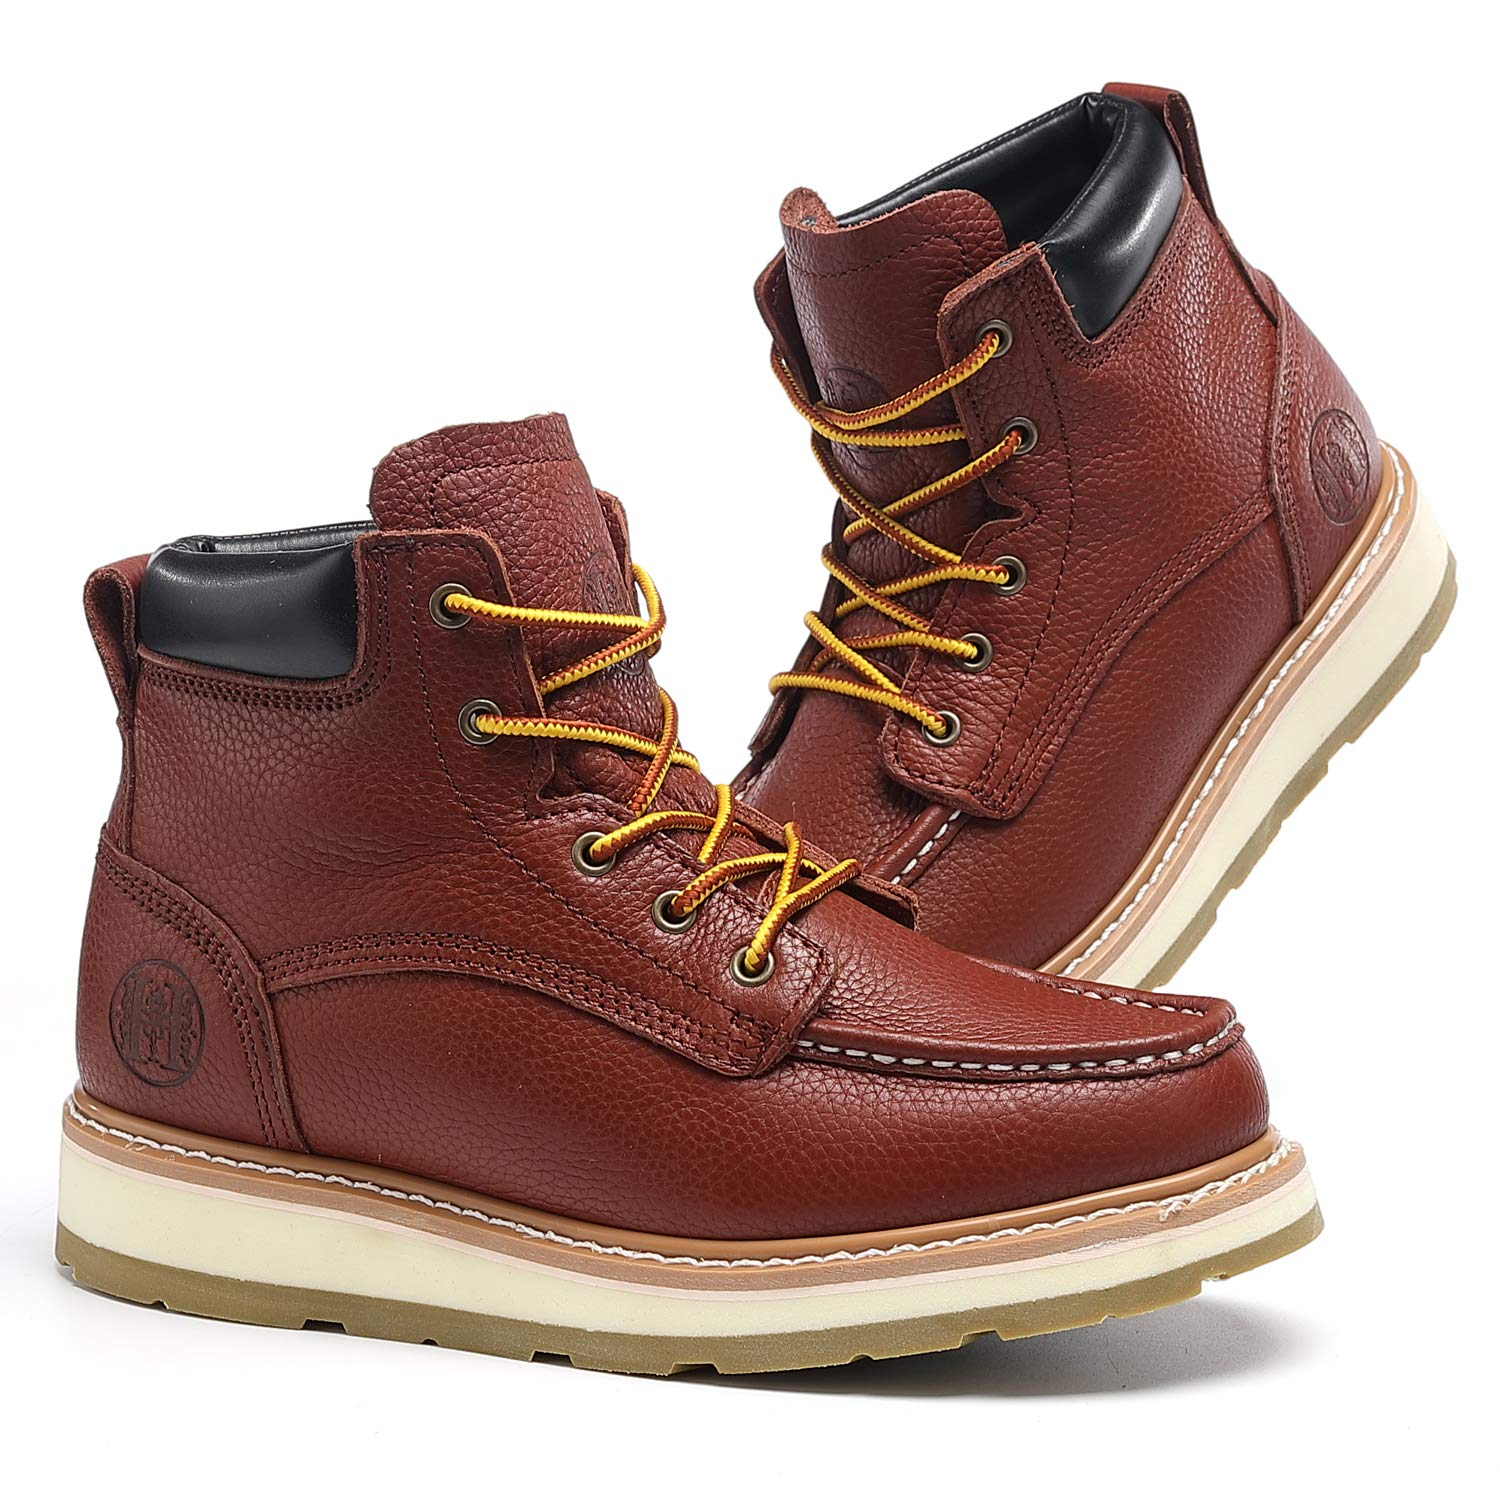 """TIANXING 6"""" Work Boots for Men Composite Soft Toe Waterproof Slip Resistant Anti-Puncture Moc Toe Construction Safety Working Boots"""